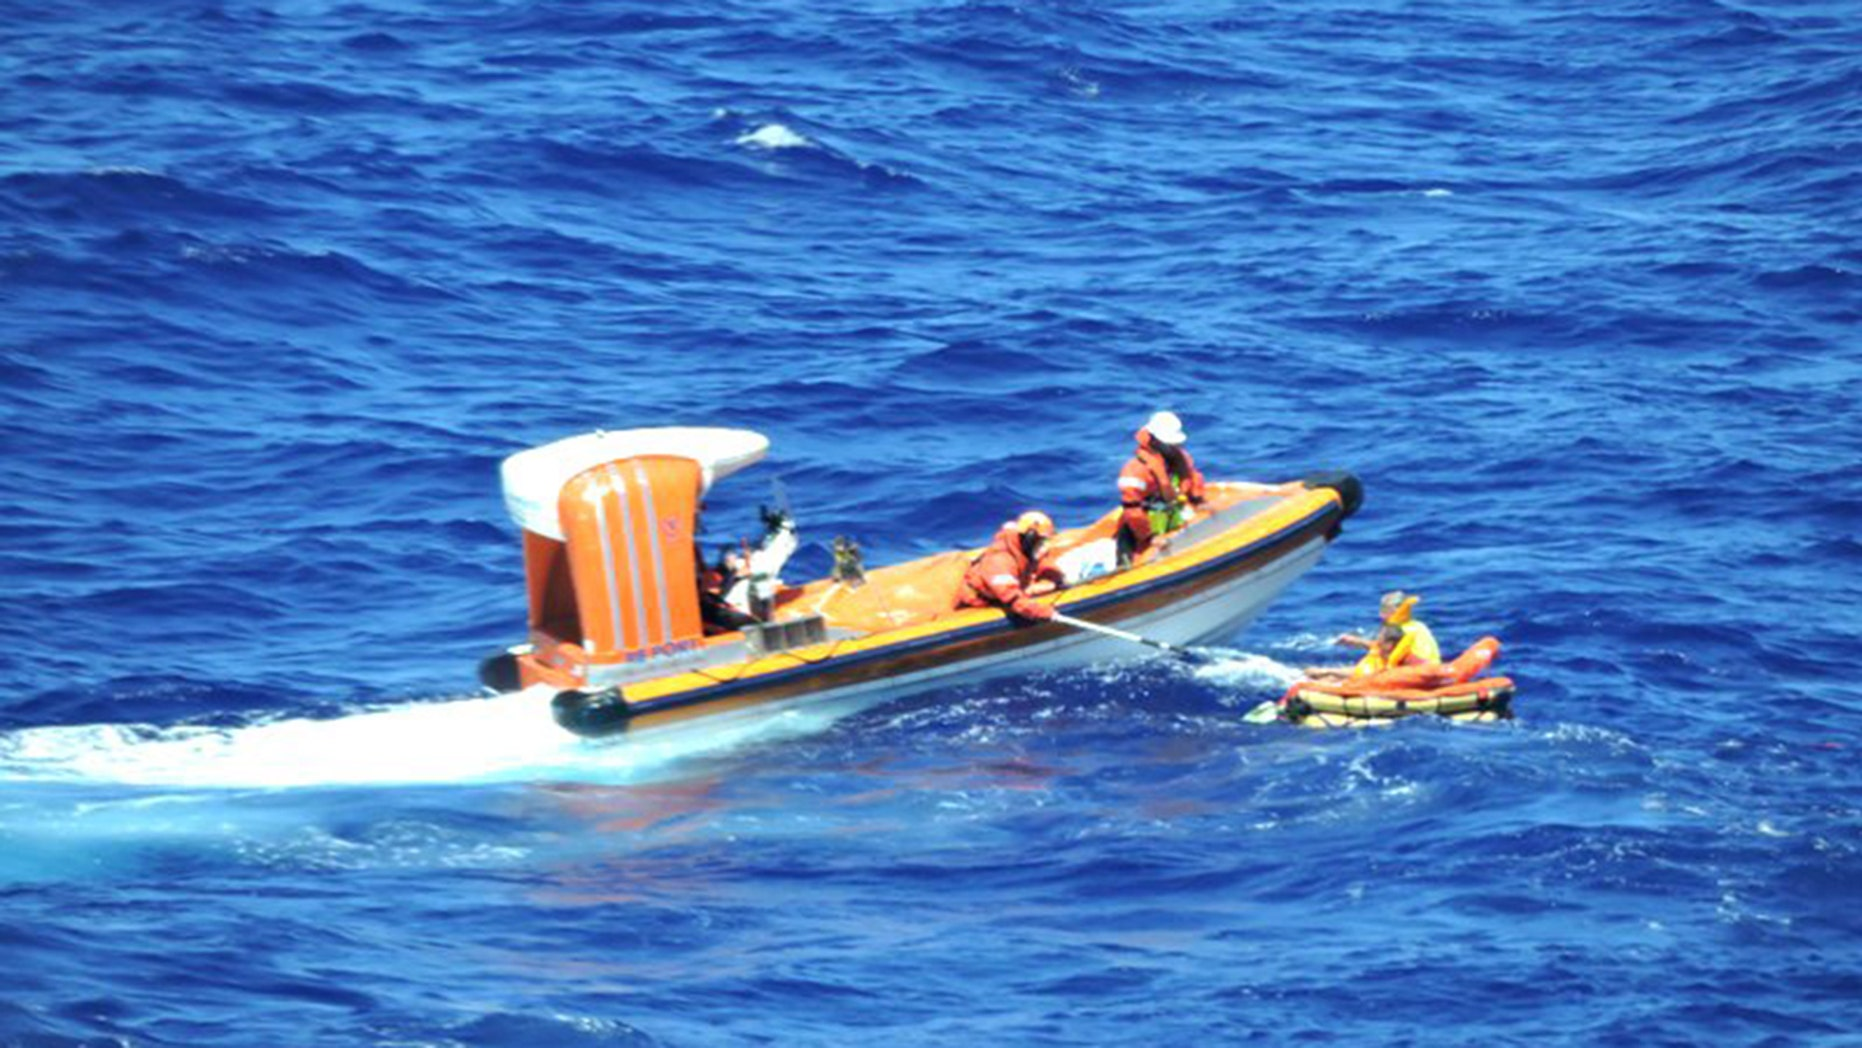 The cruise sent out a dinghy to retrieve the men as passengers aboard the Regal Princess watched and cheered from the ship's deck.